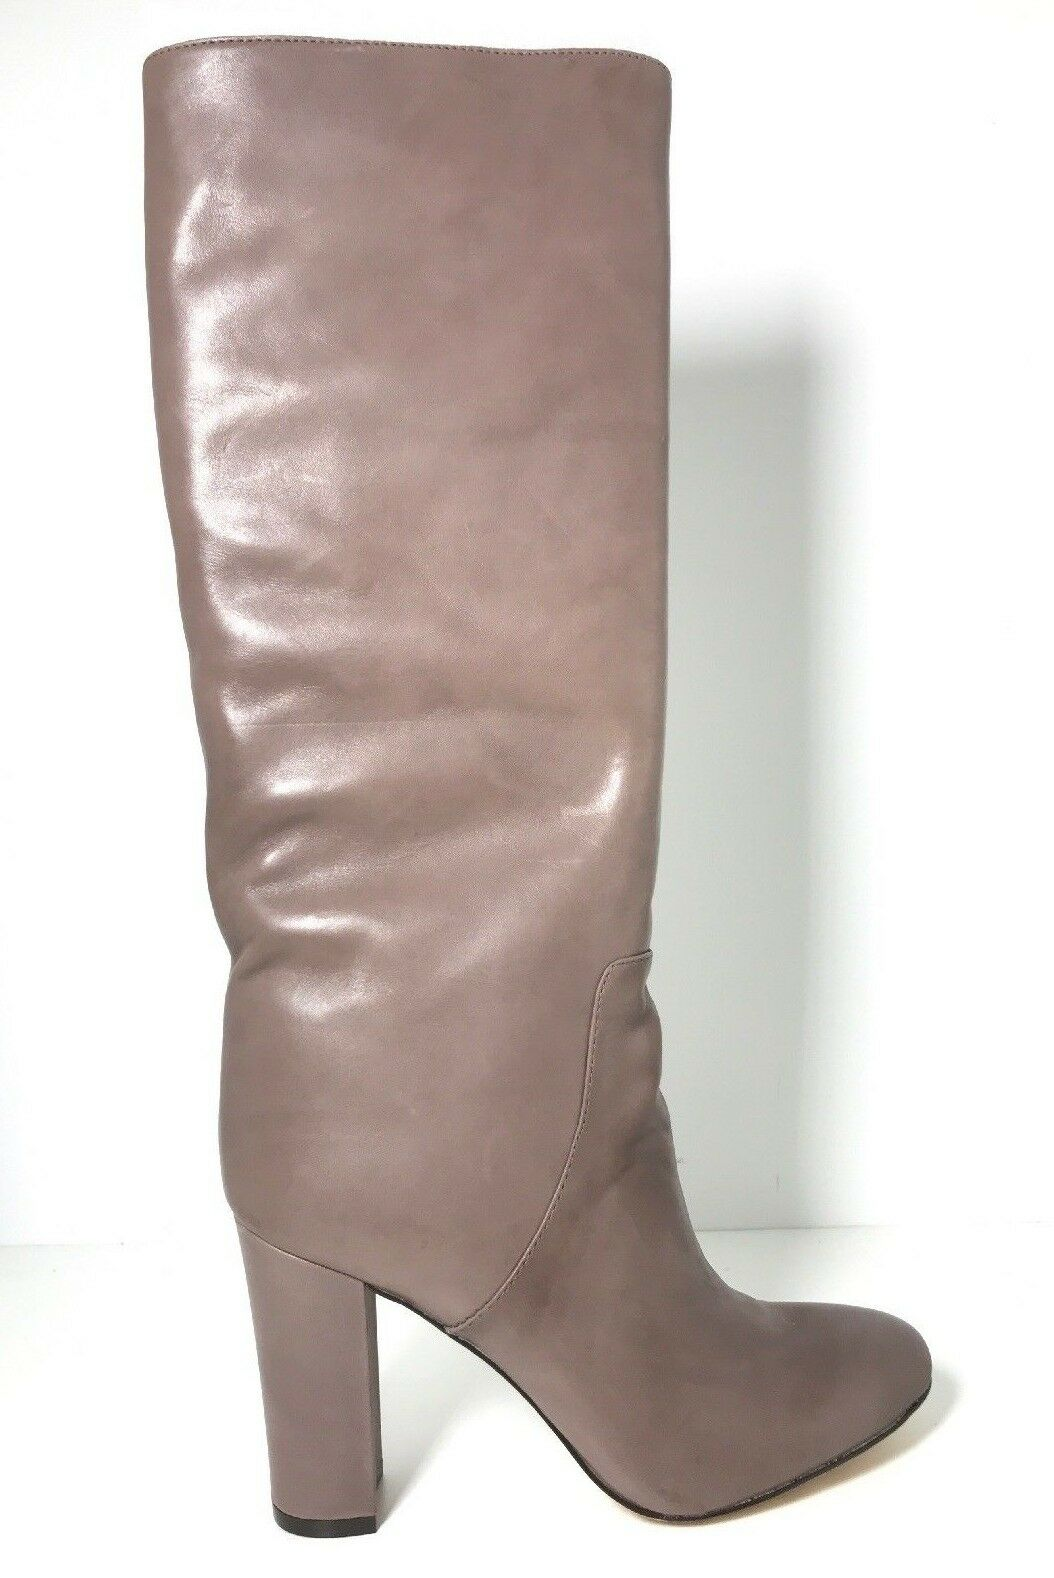 Nw Vince Camuto VC Signature Tiona Taupe Topo Dutch Leather Boots  450 Wide Calf